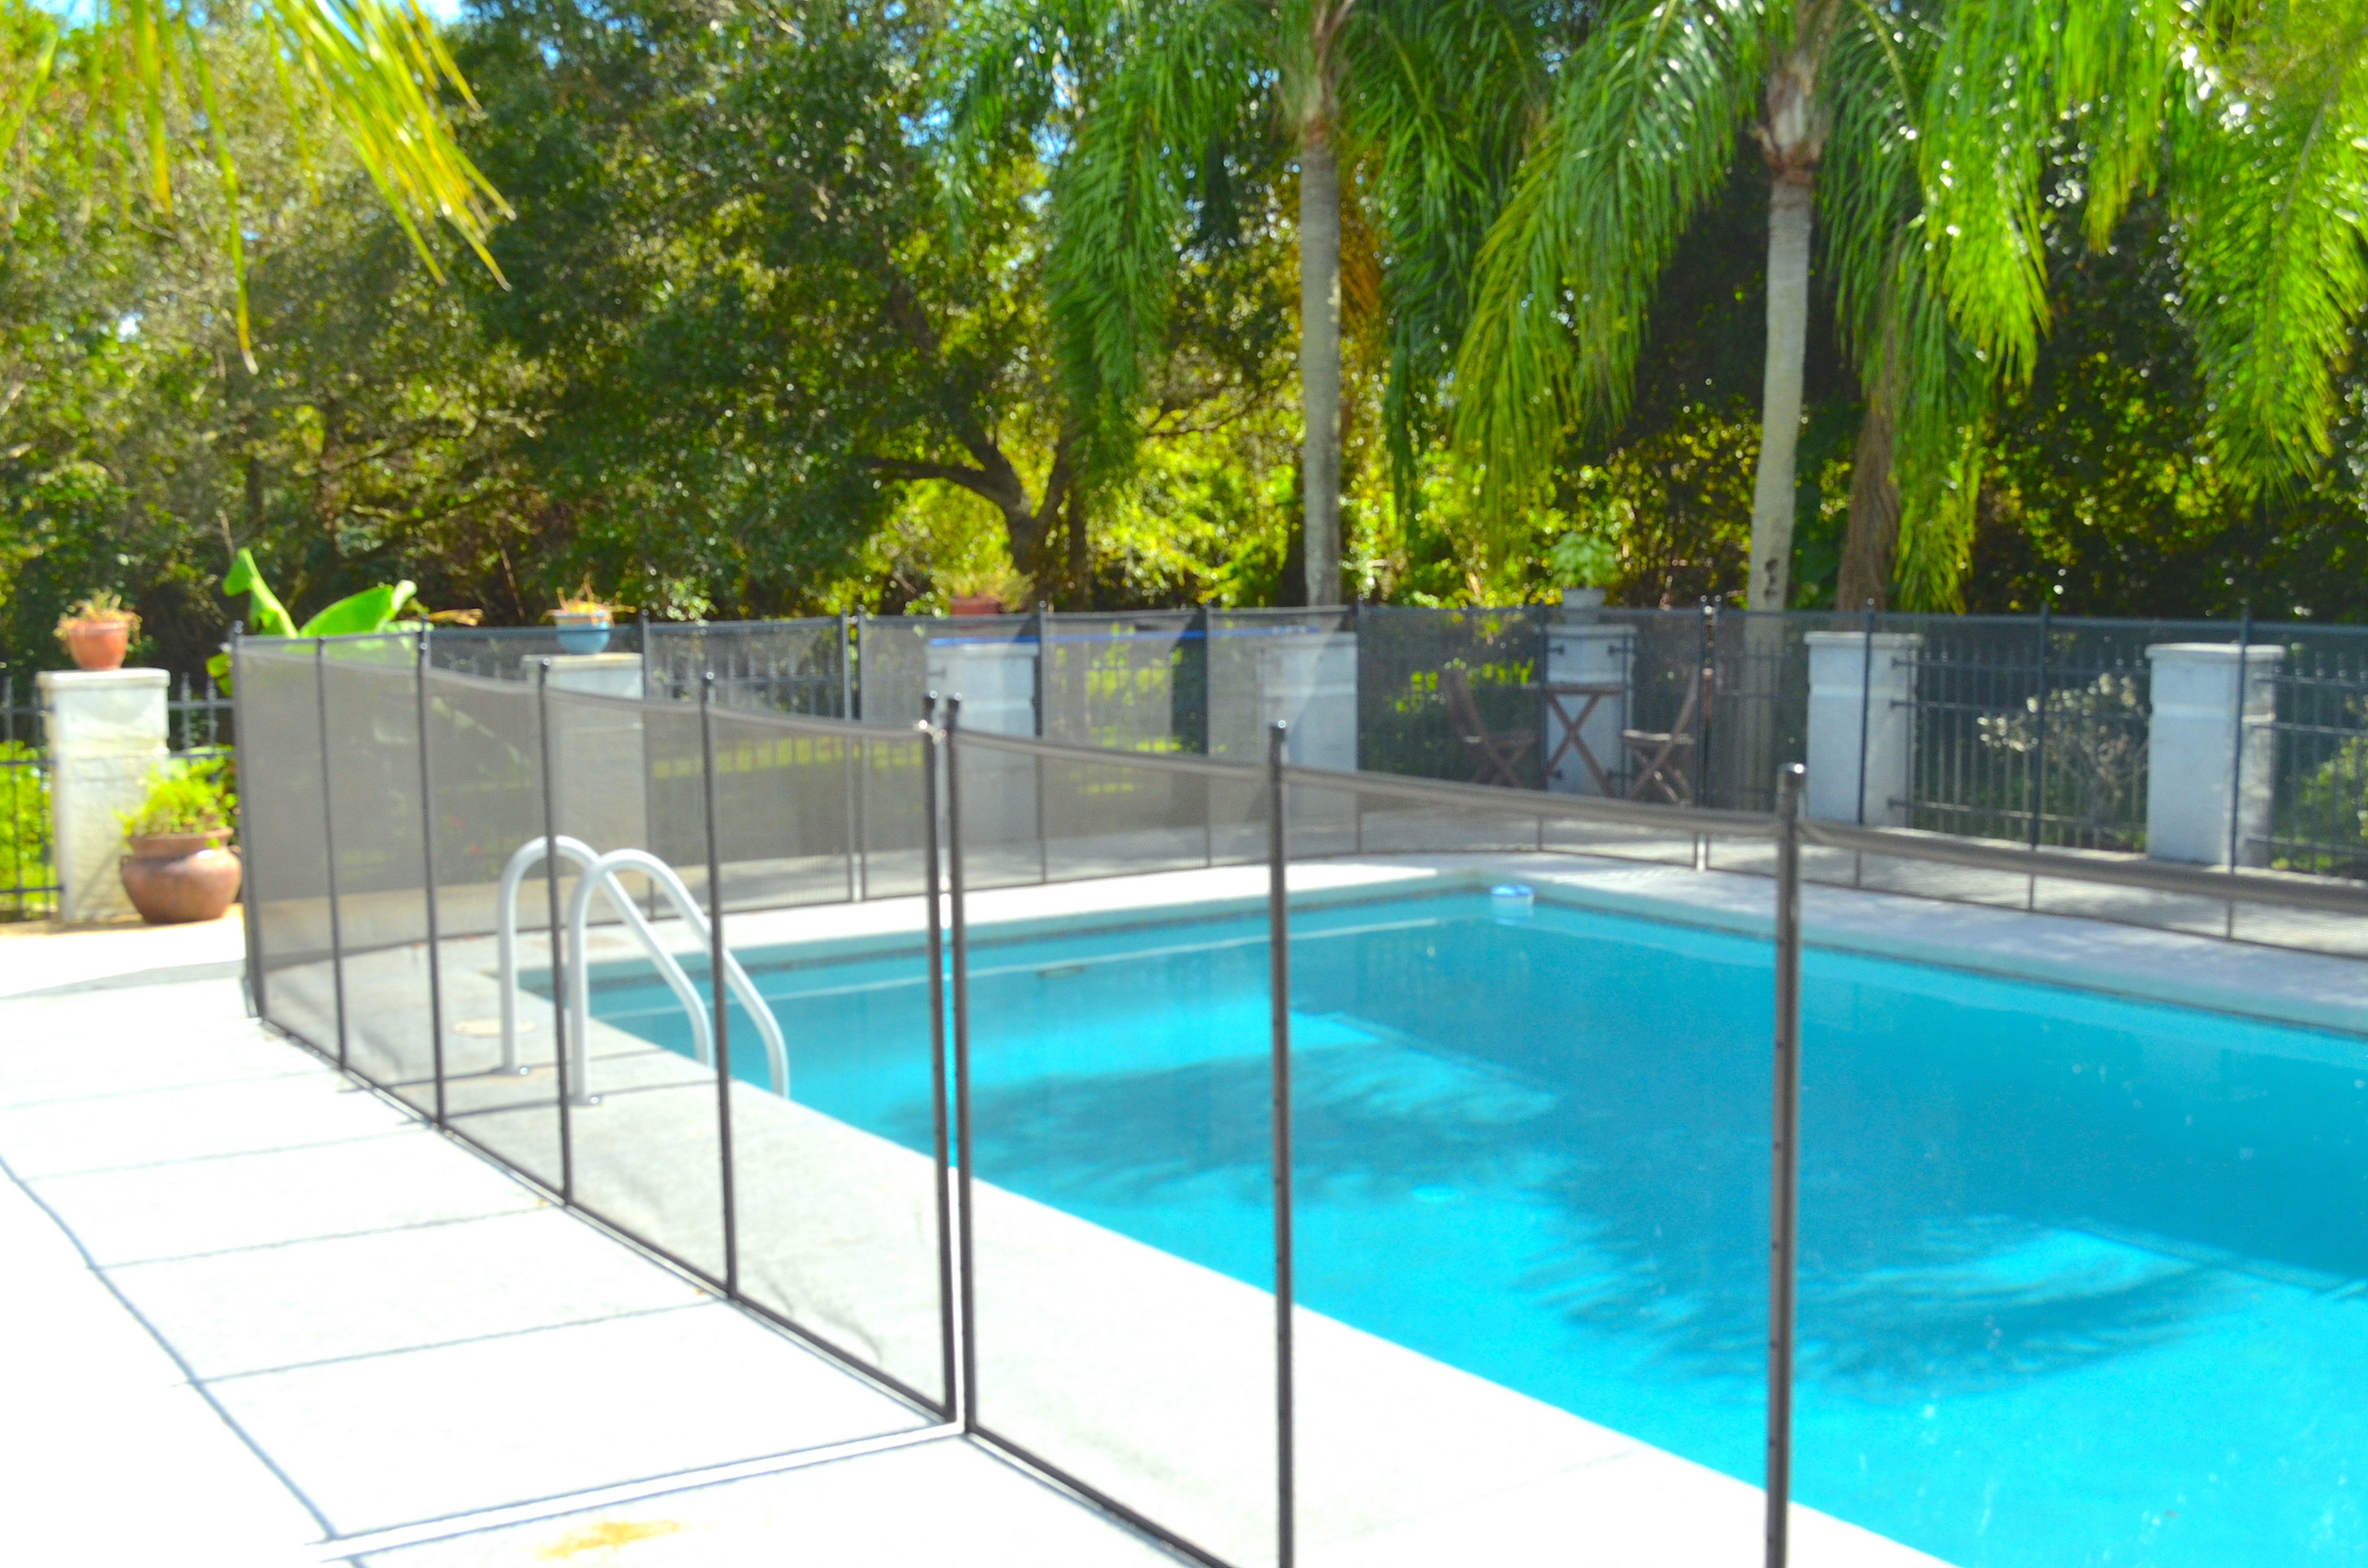 Installing A Pool Fence Means Protection Prevention And Preservation Of Life Protect A Child